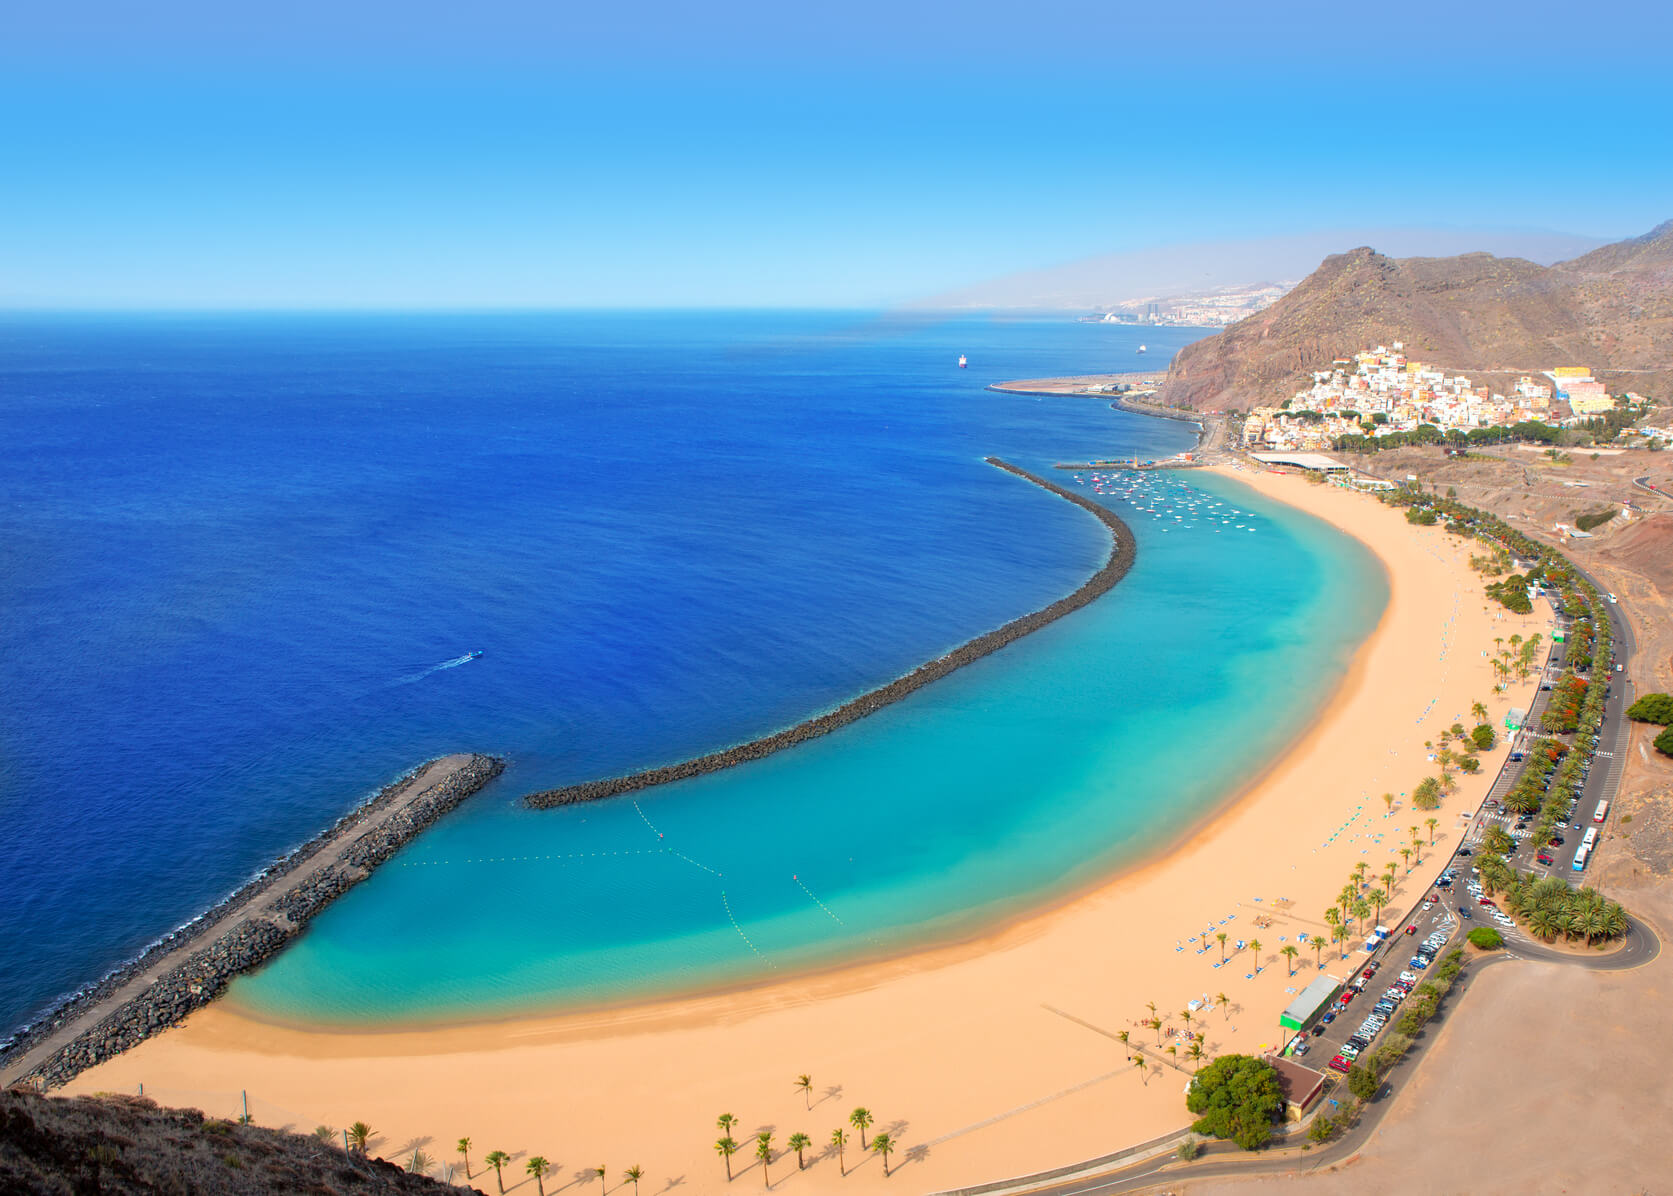 Miami to the Canary Islands for only $374 roundtrip